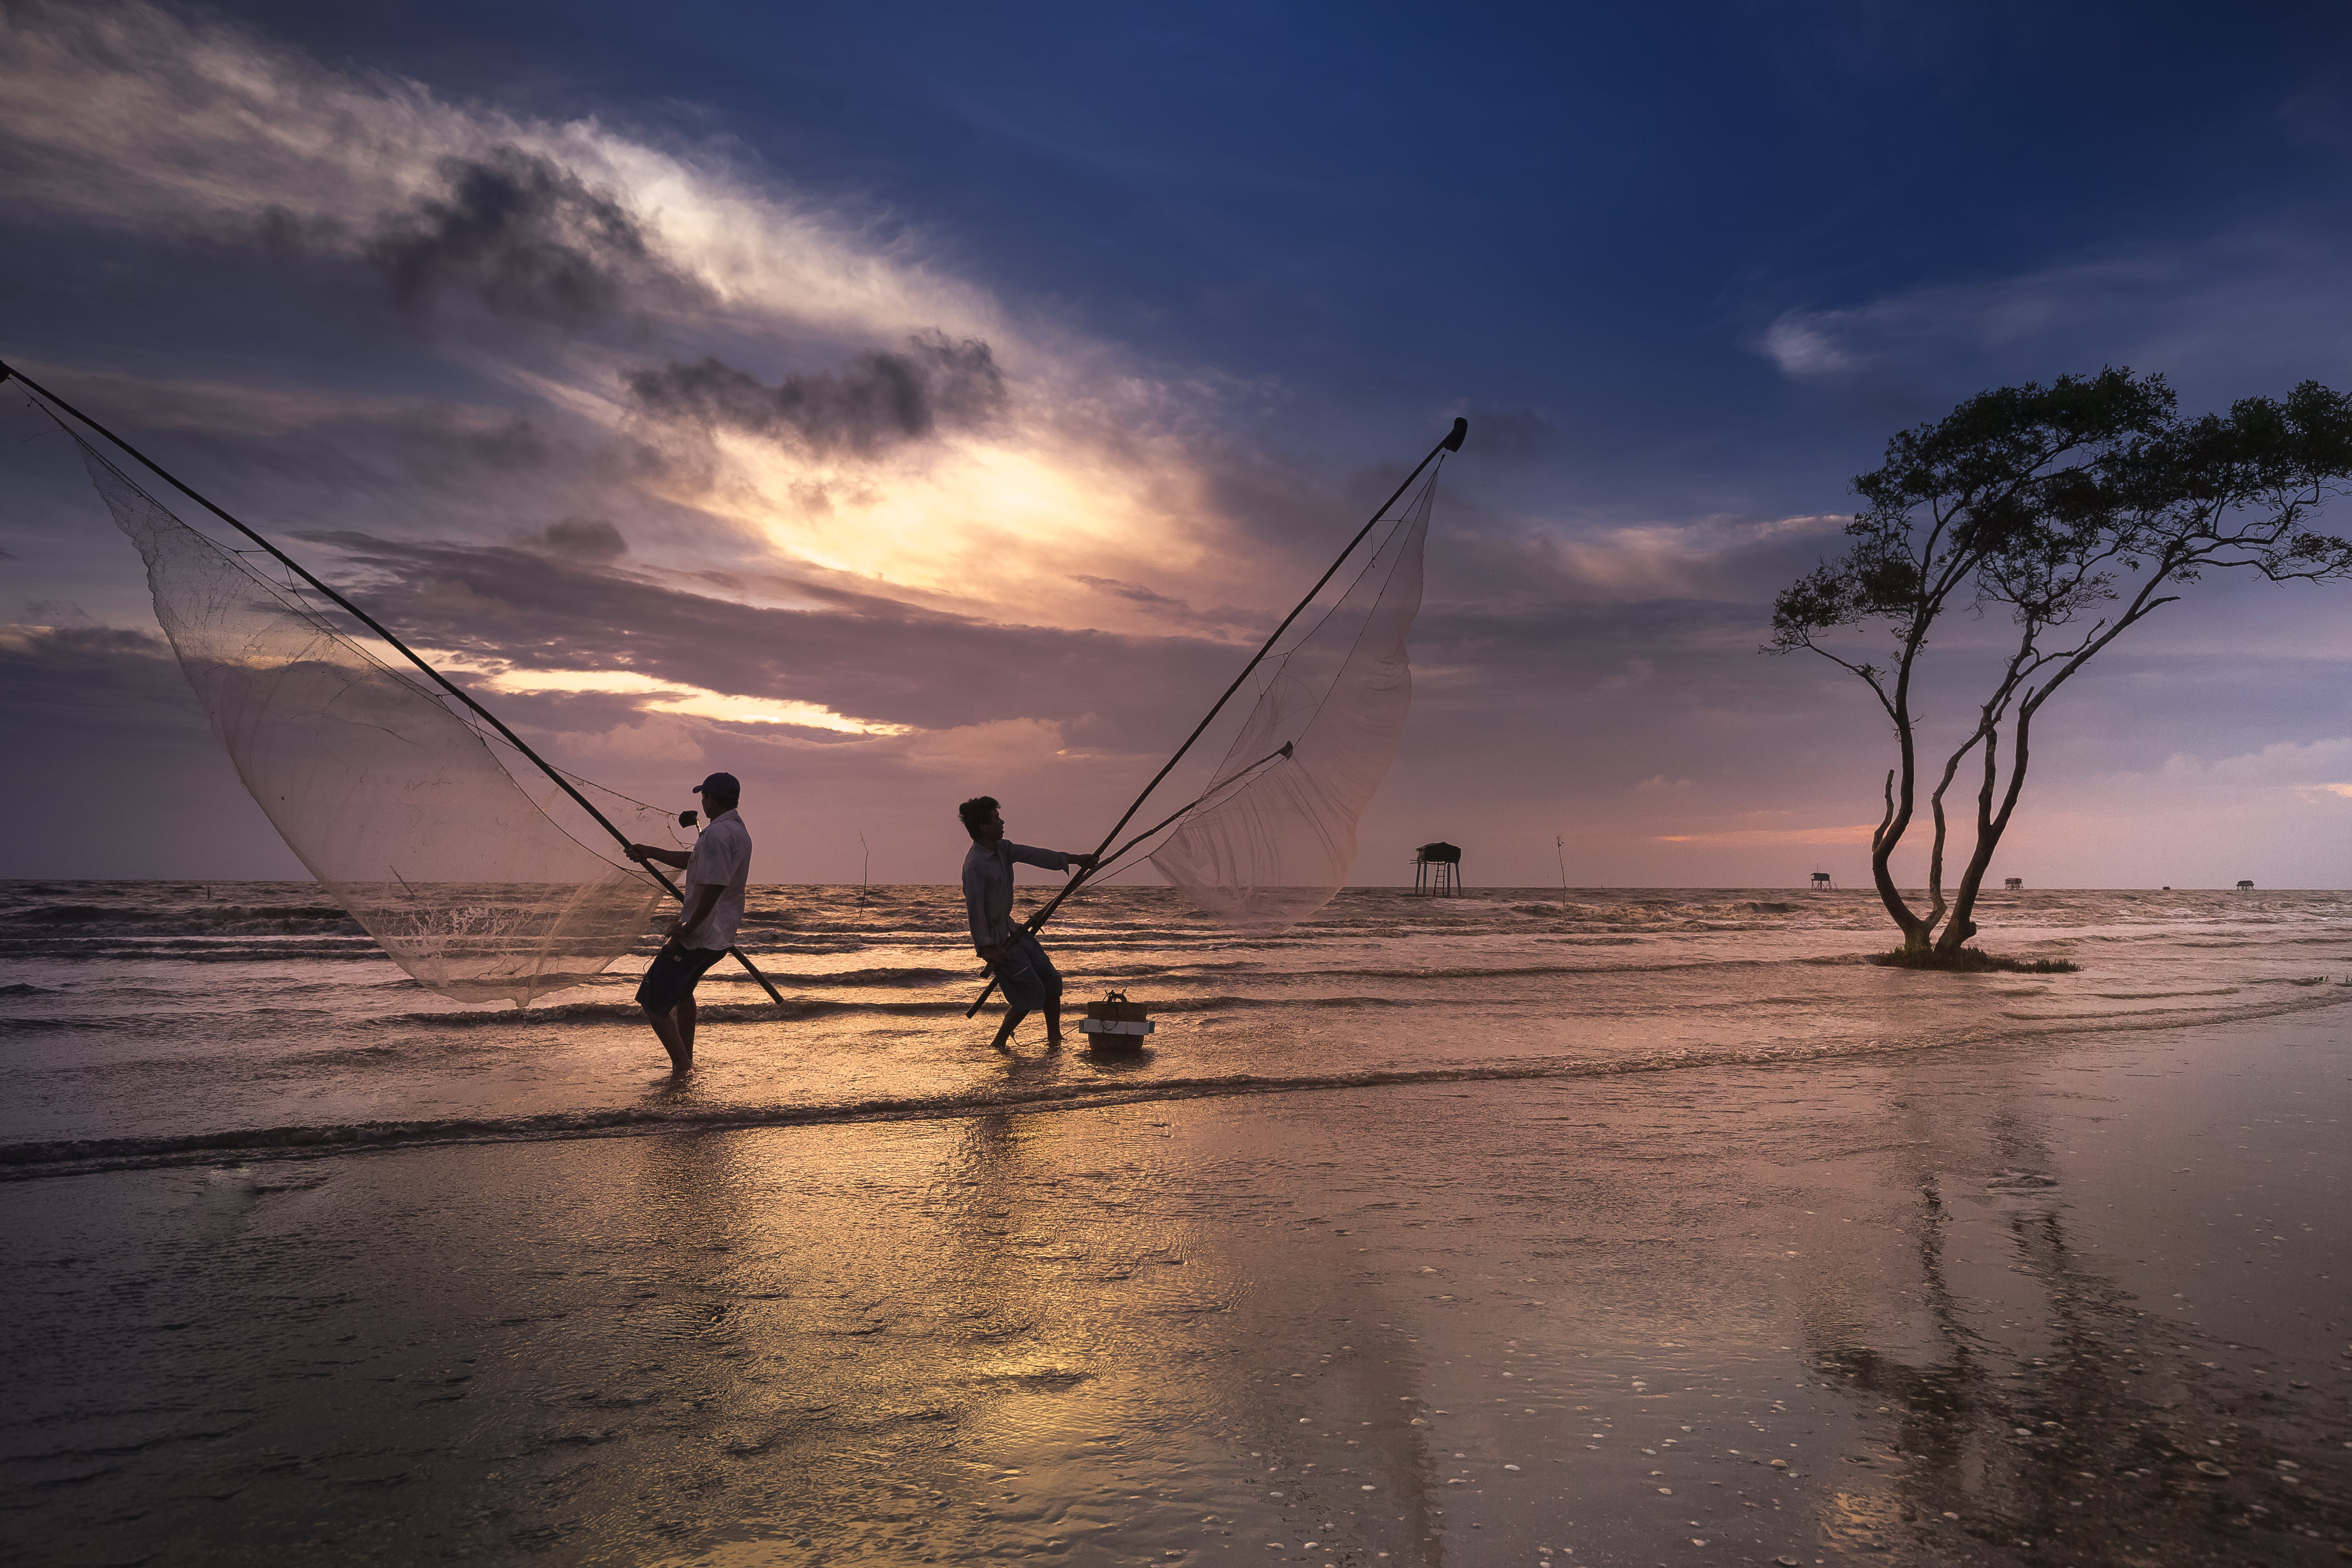 Two Men Holding Nets